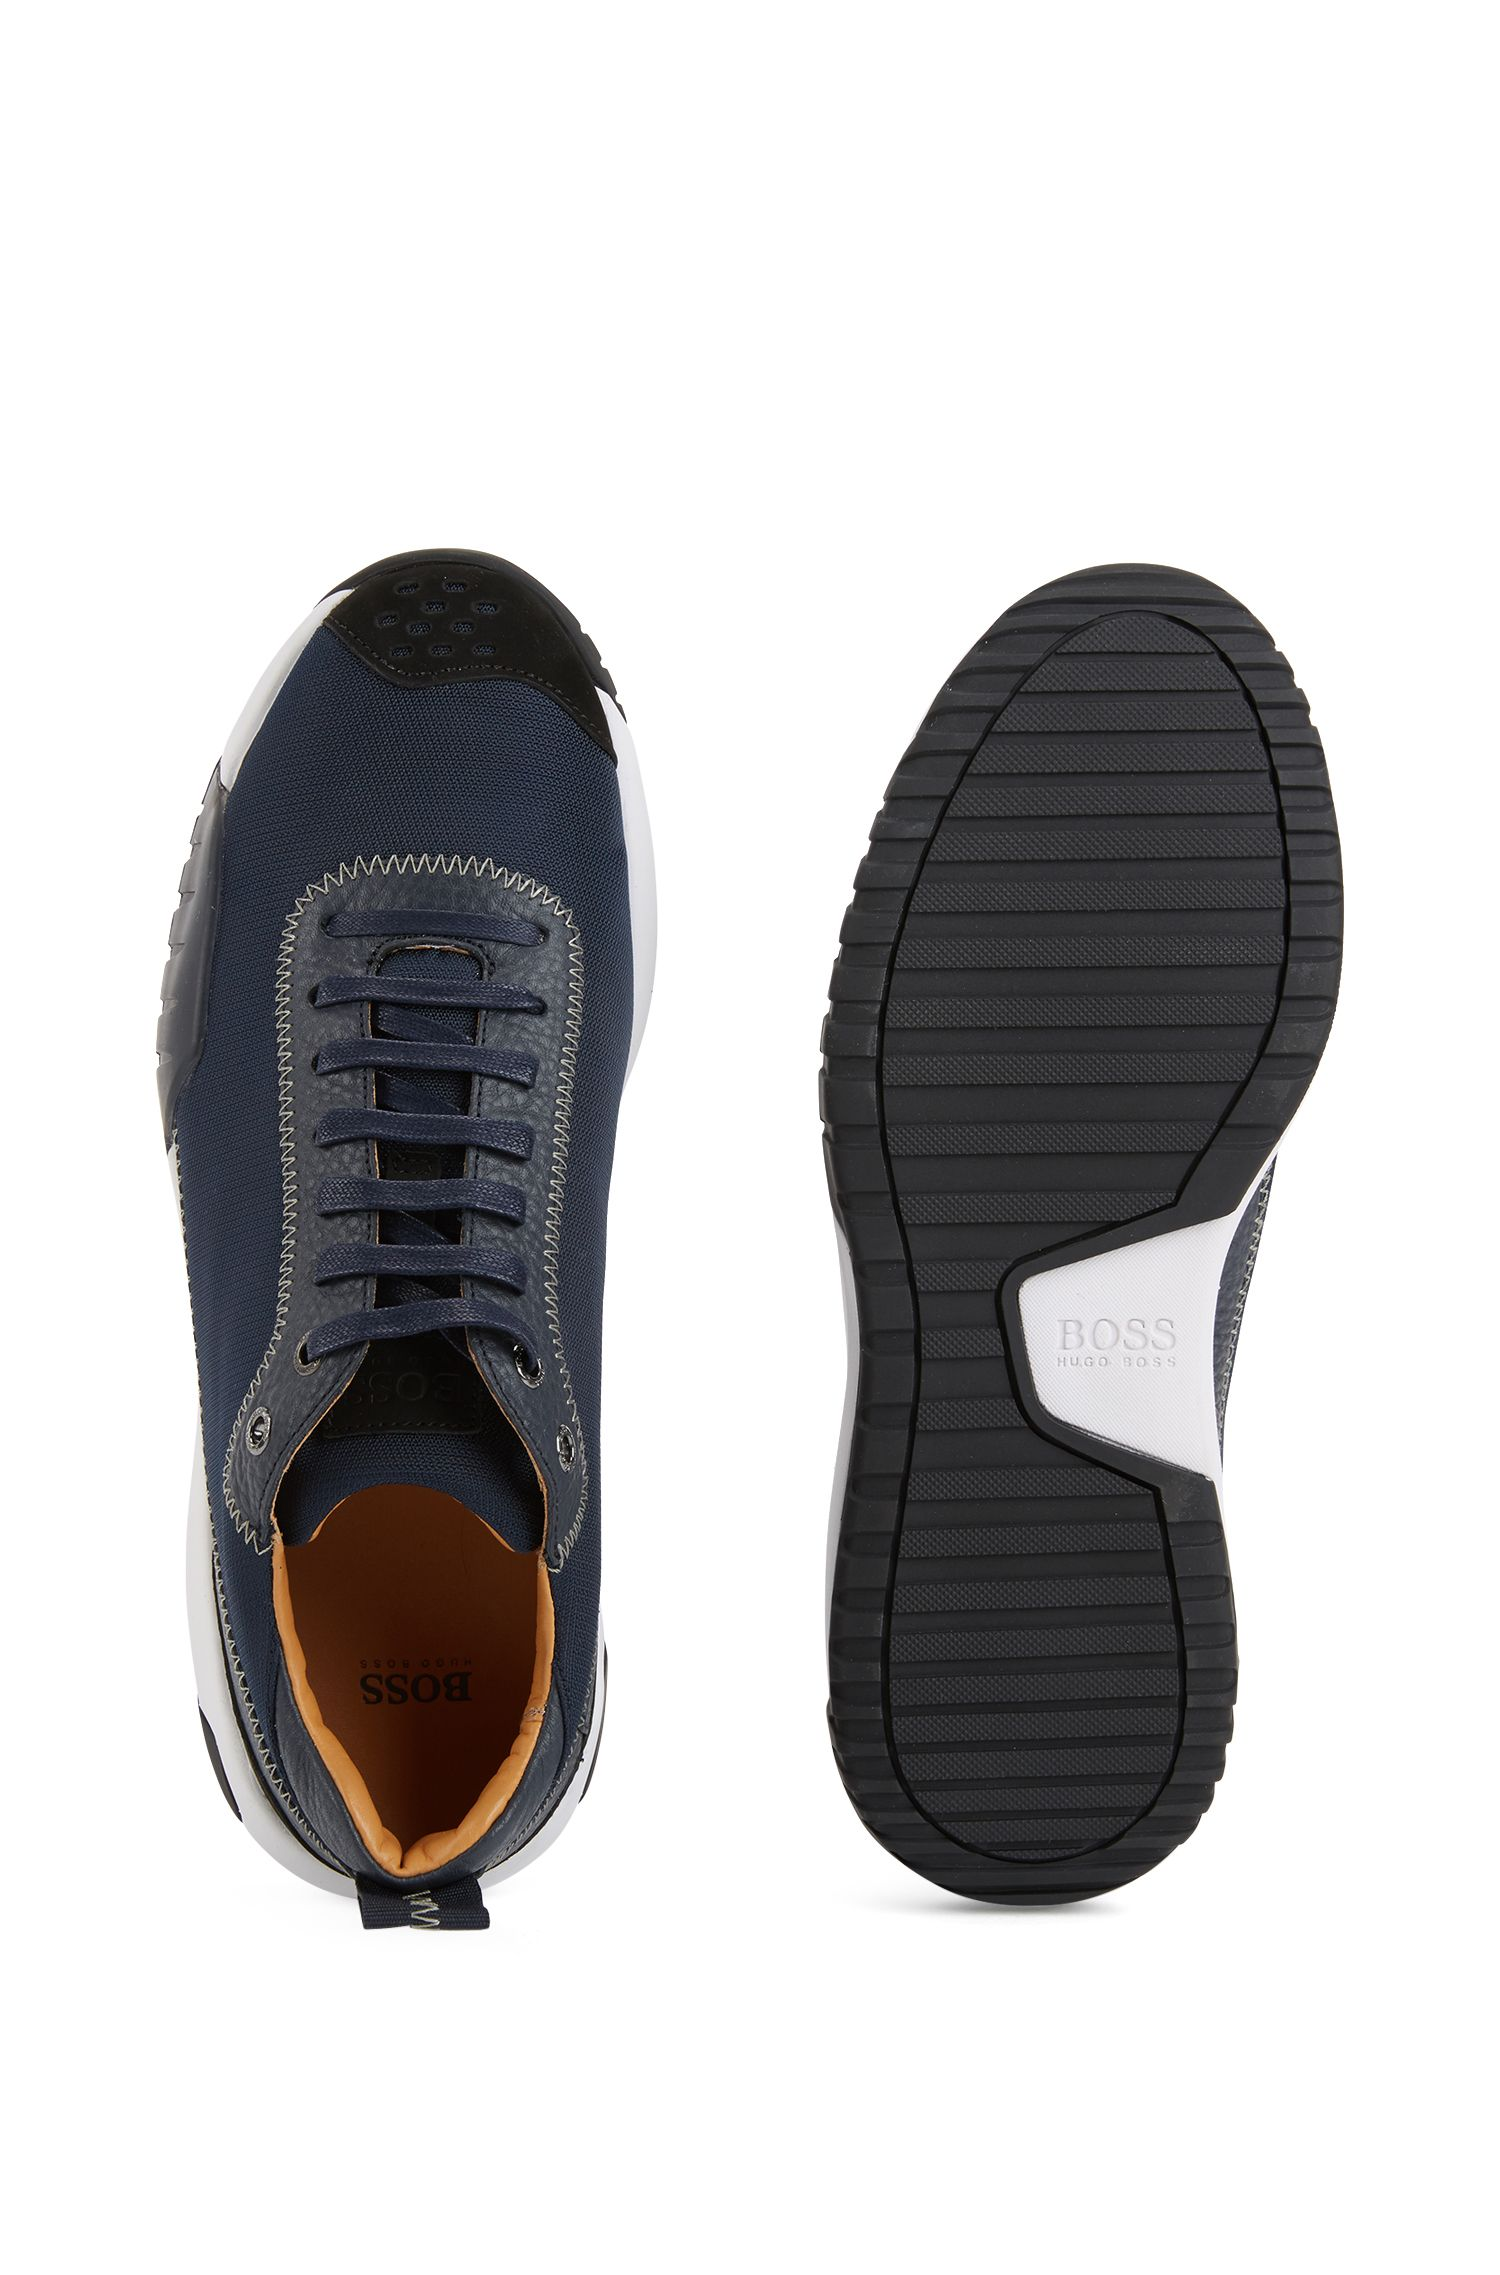 Low-top sneakers in nylon with leather details